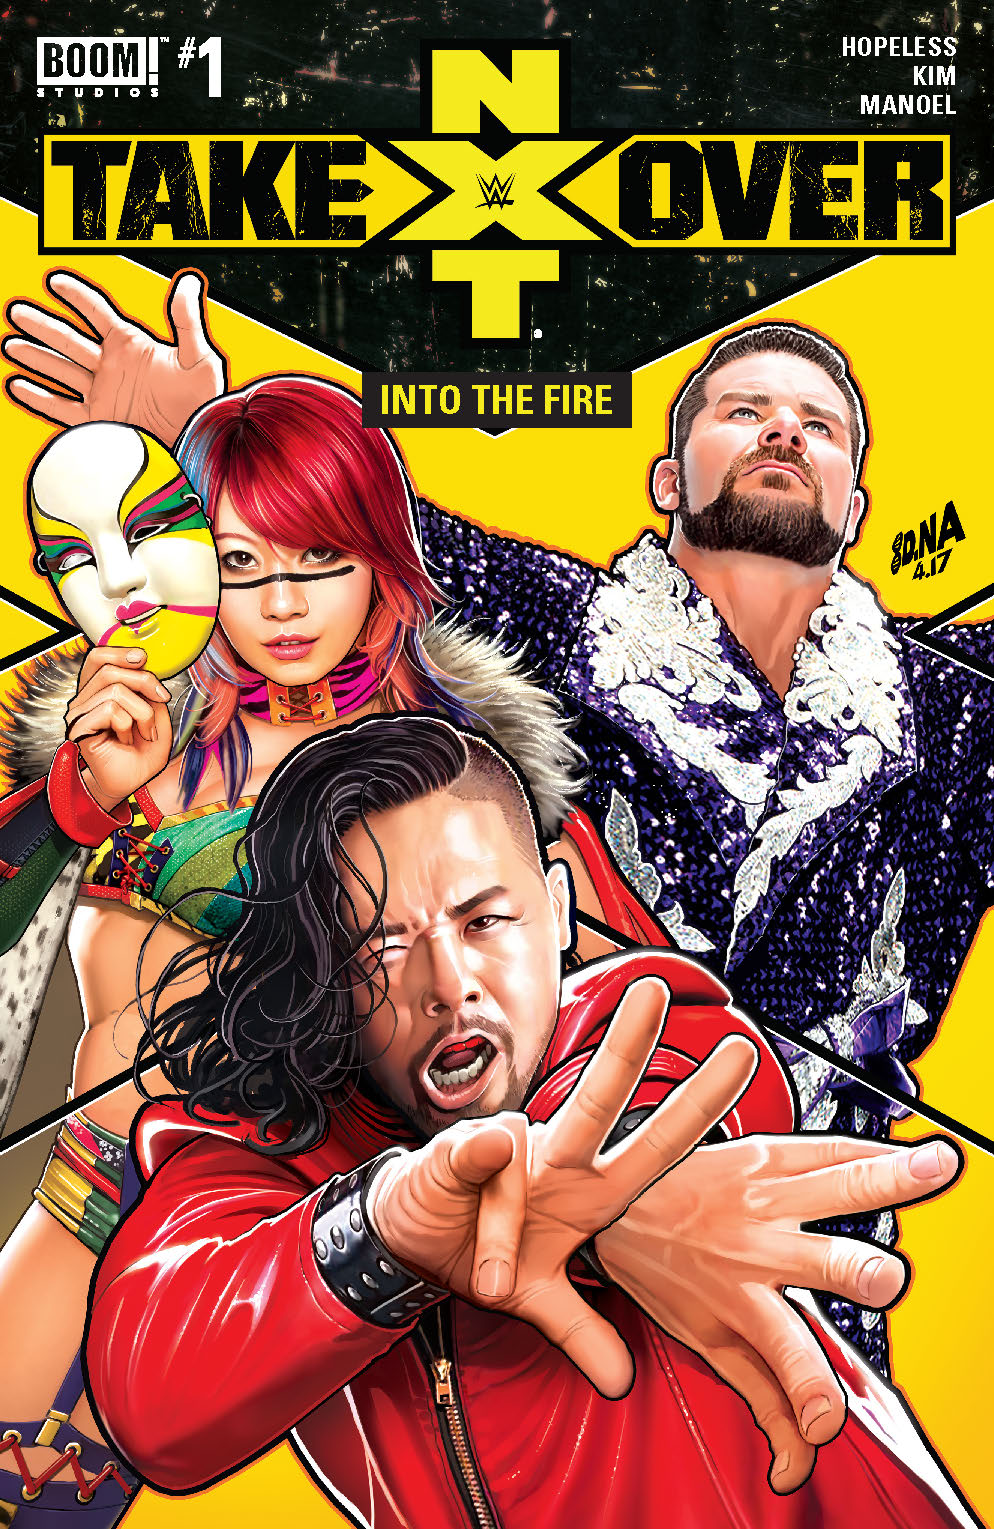 'WWE NXT Takeover #1: Into the Fire' review: Stoking the flames of the Women's Evolution